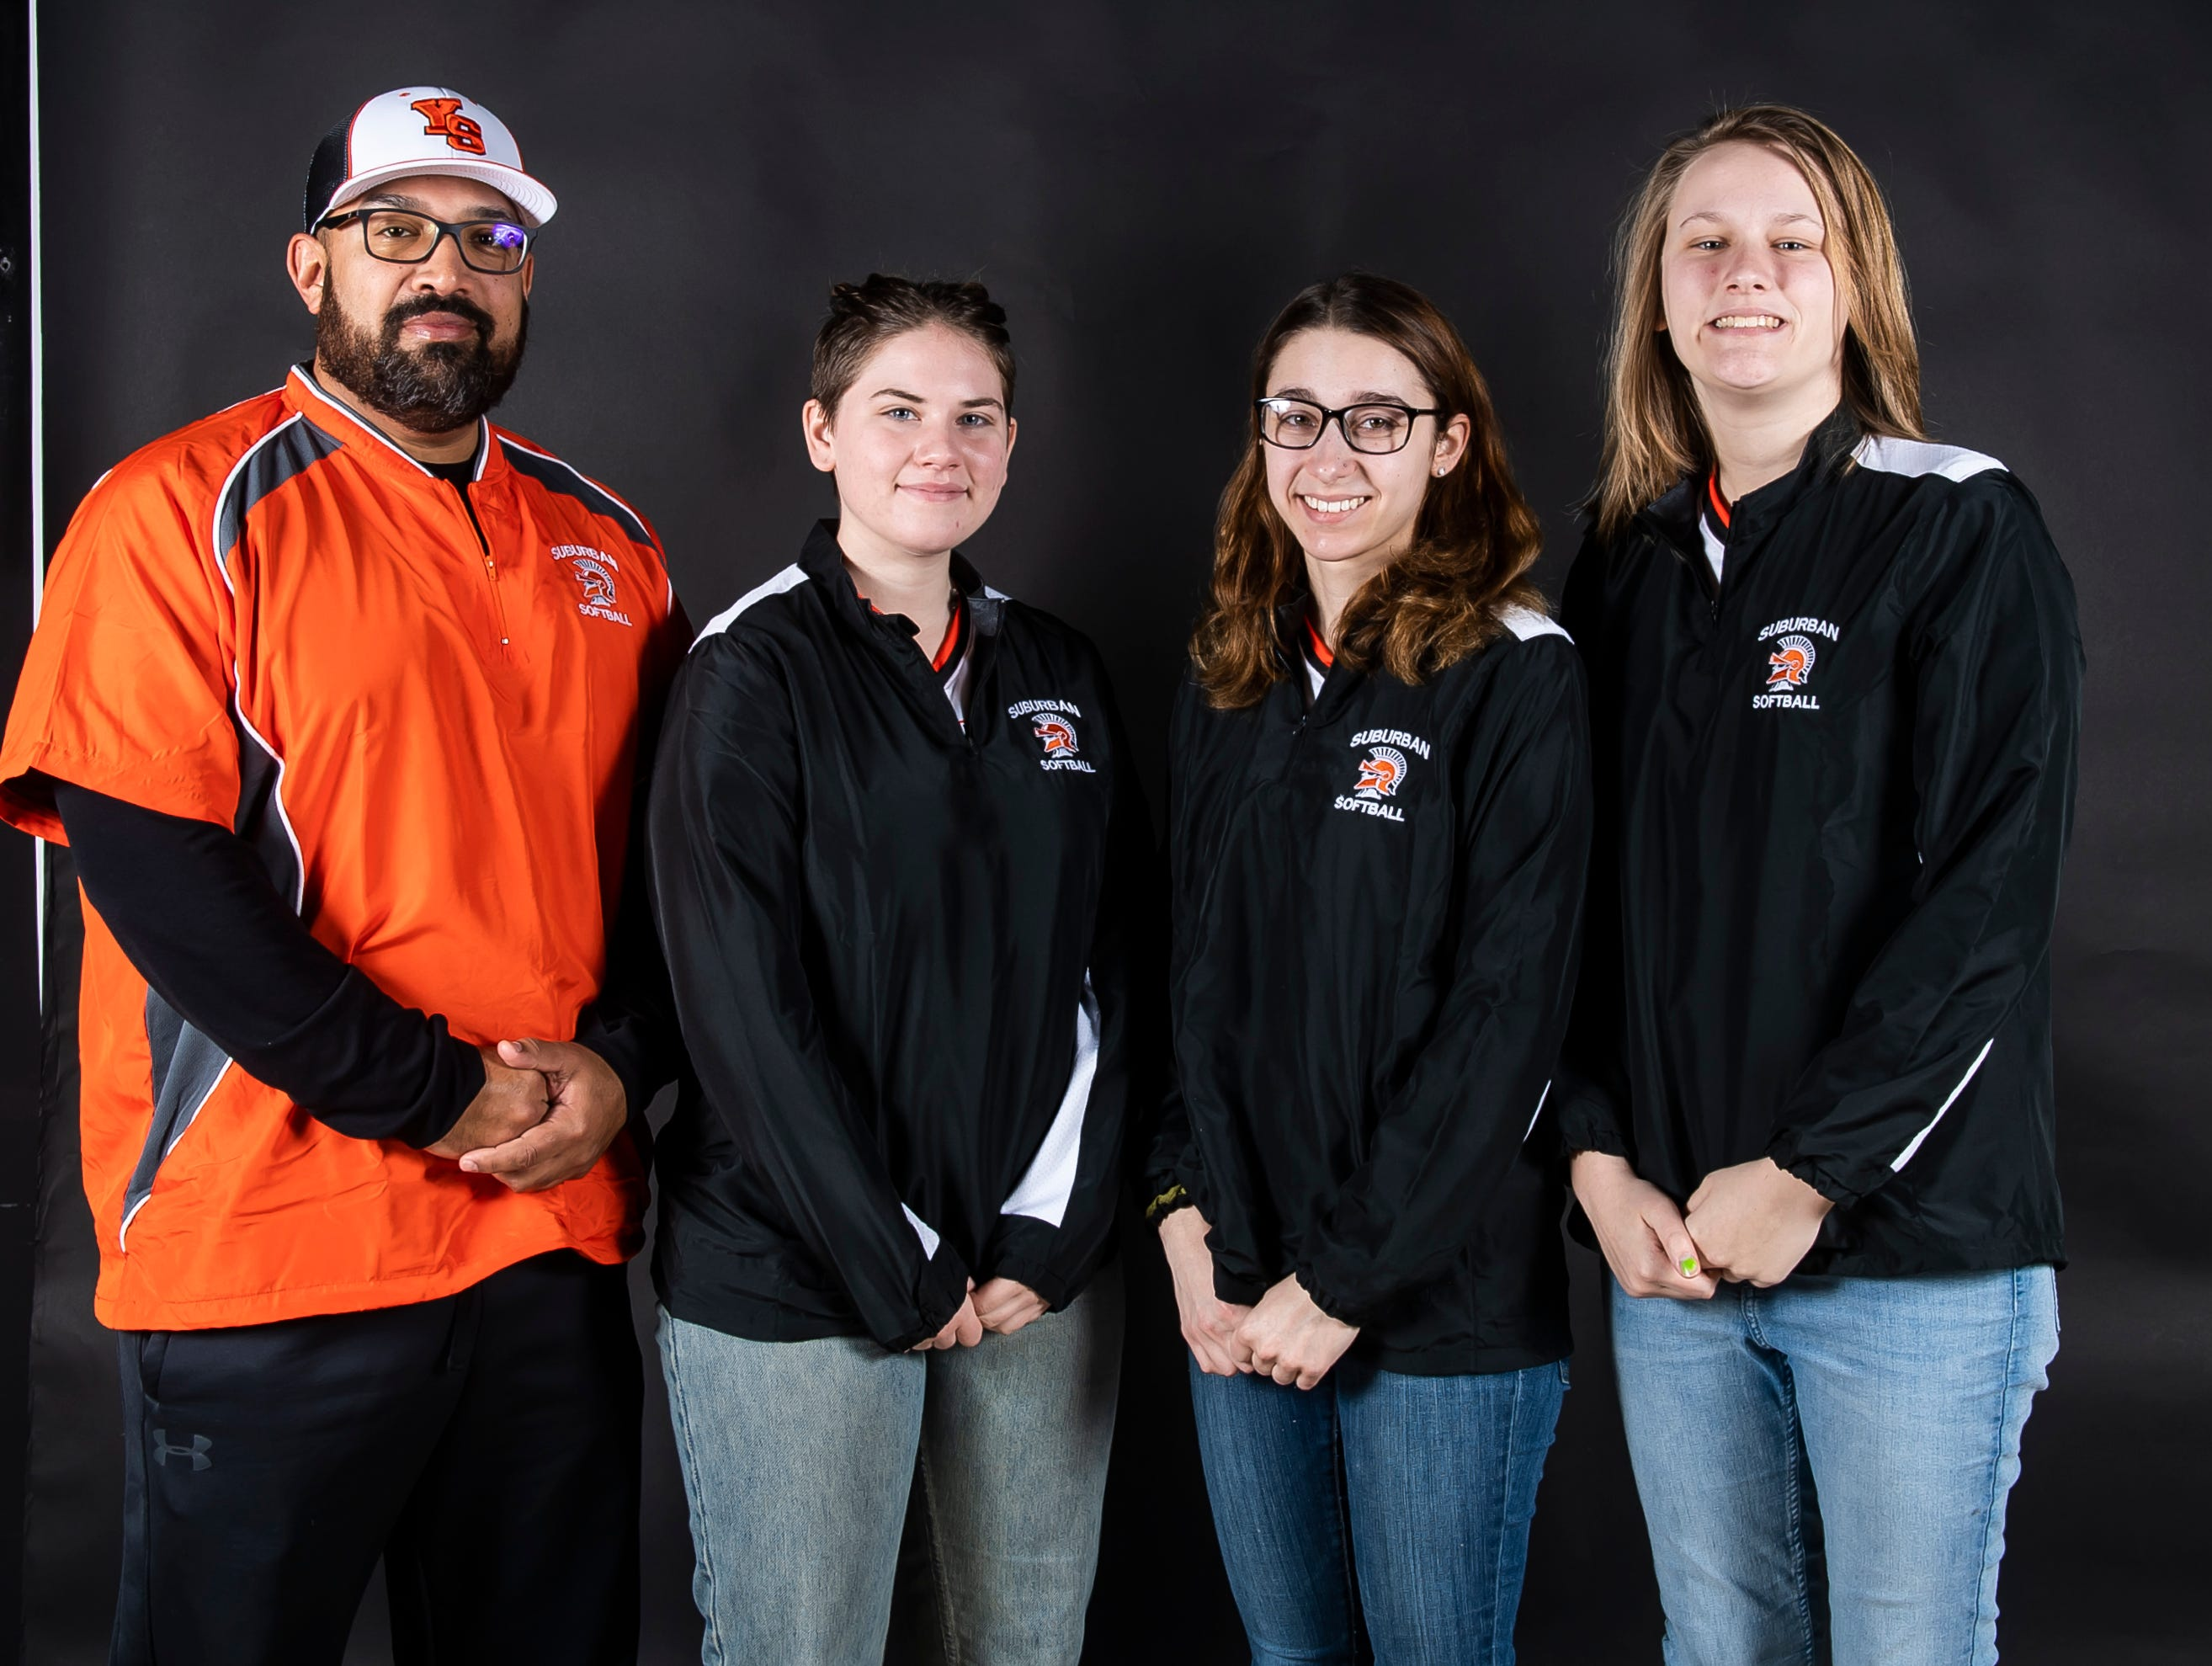 (From right) York Suburban softball players Kylie Strebig, Maddie Barshinger and Emily Myers pose with coach Larry Dalton in the GameTimePA photo booth during spring sports media day in York Sunday, March 10, 2019.